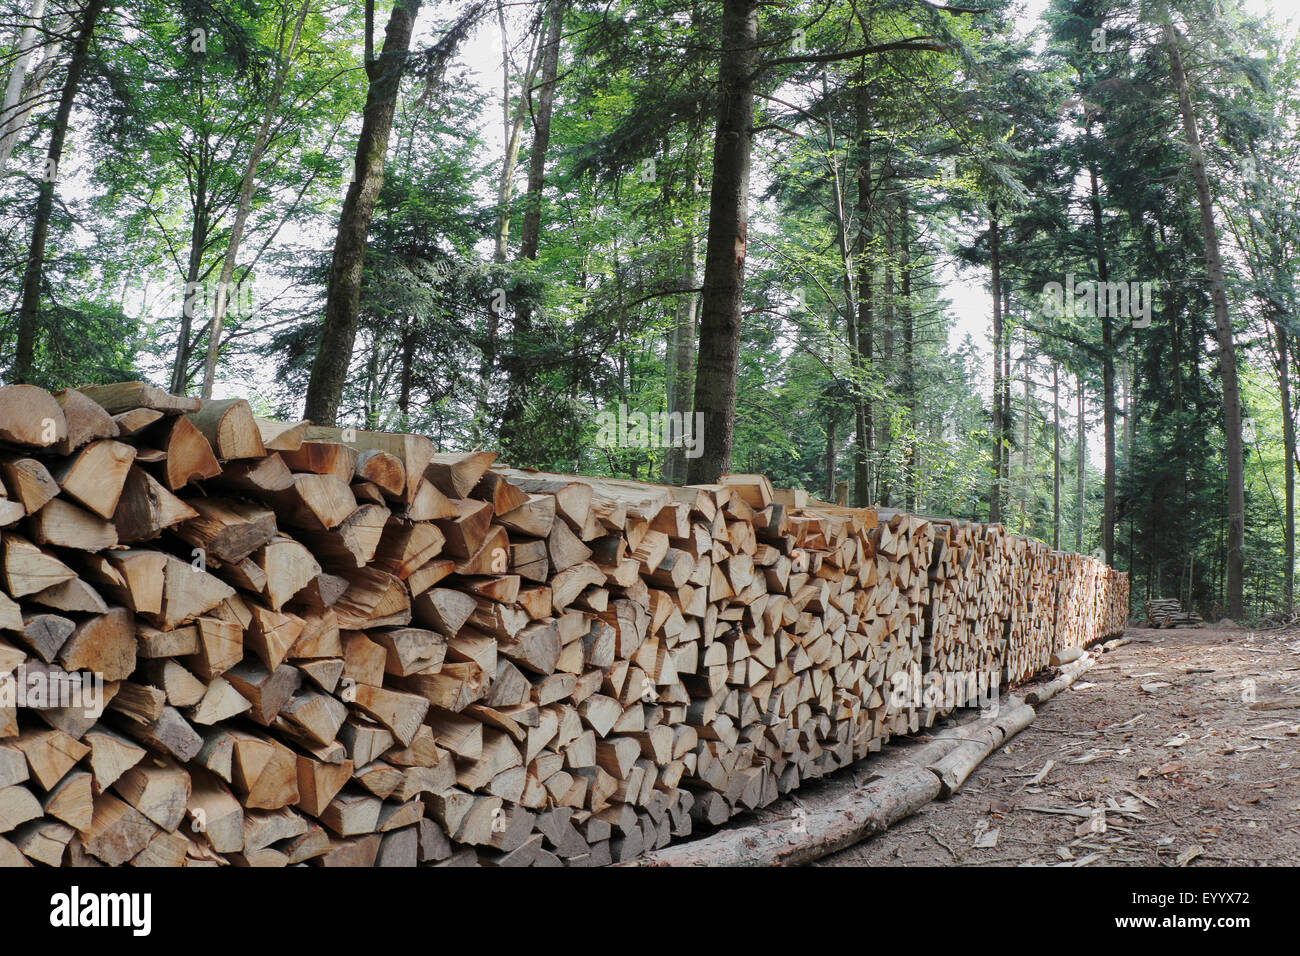 firewood ready to pickup in the forest, Germany - Stock Image